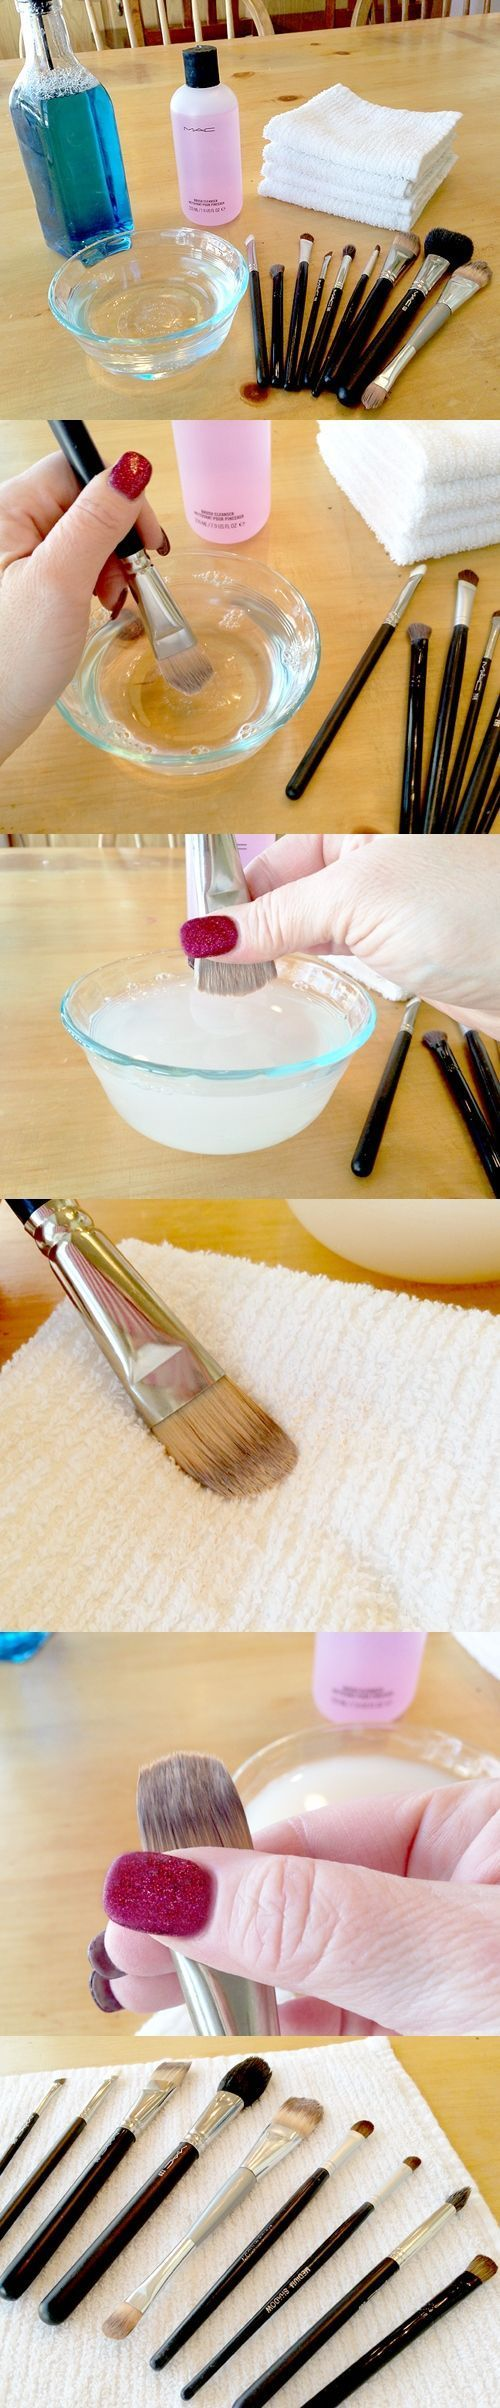 Clean your makeup brushes every week with special makeup